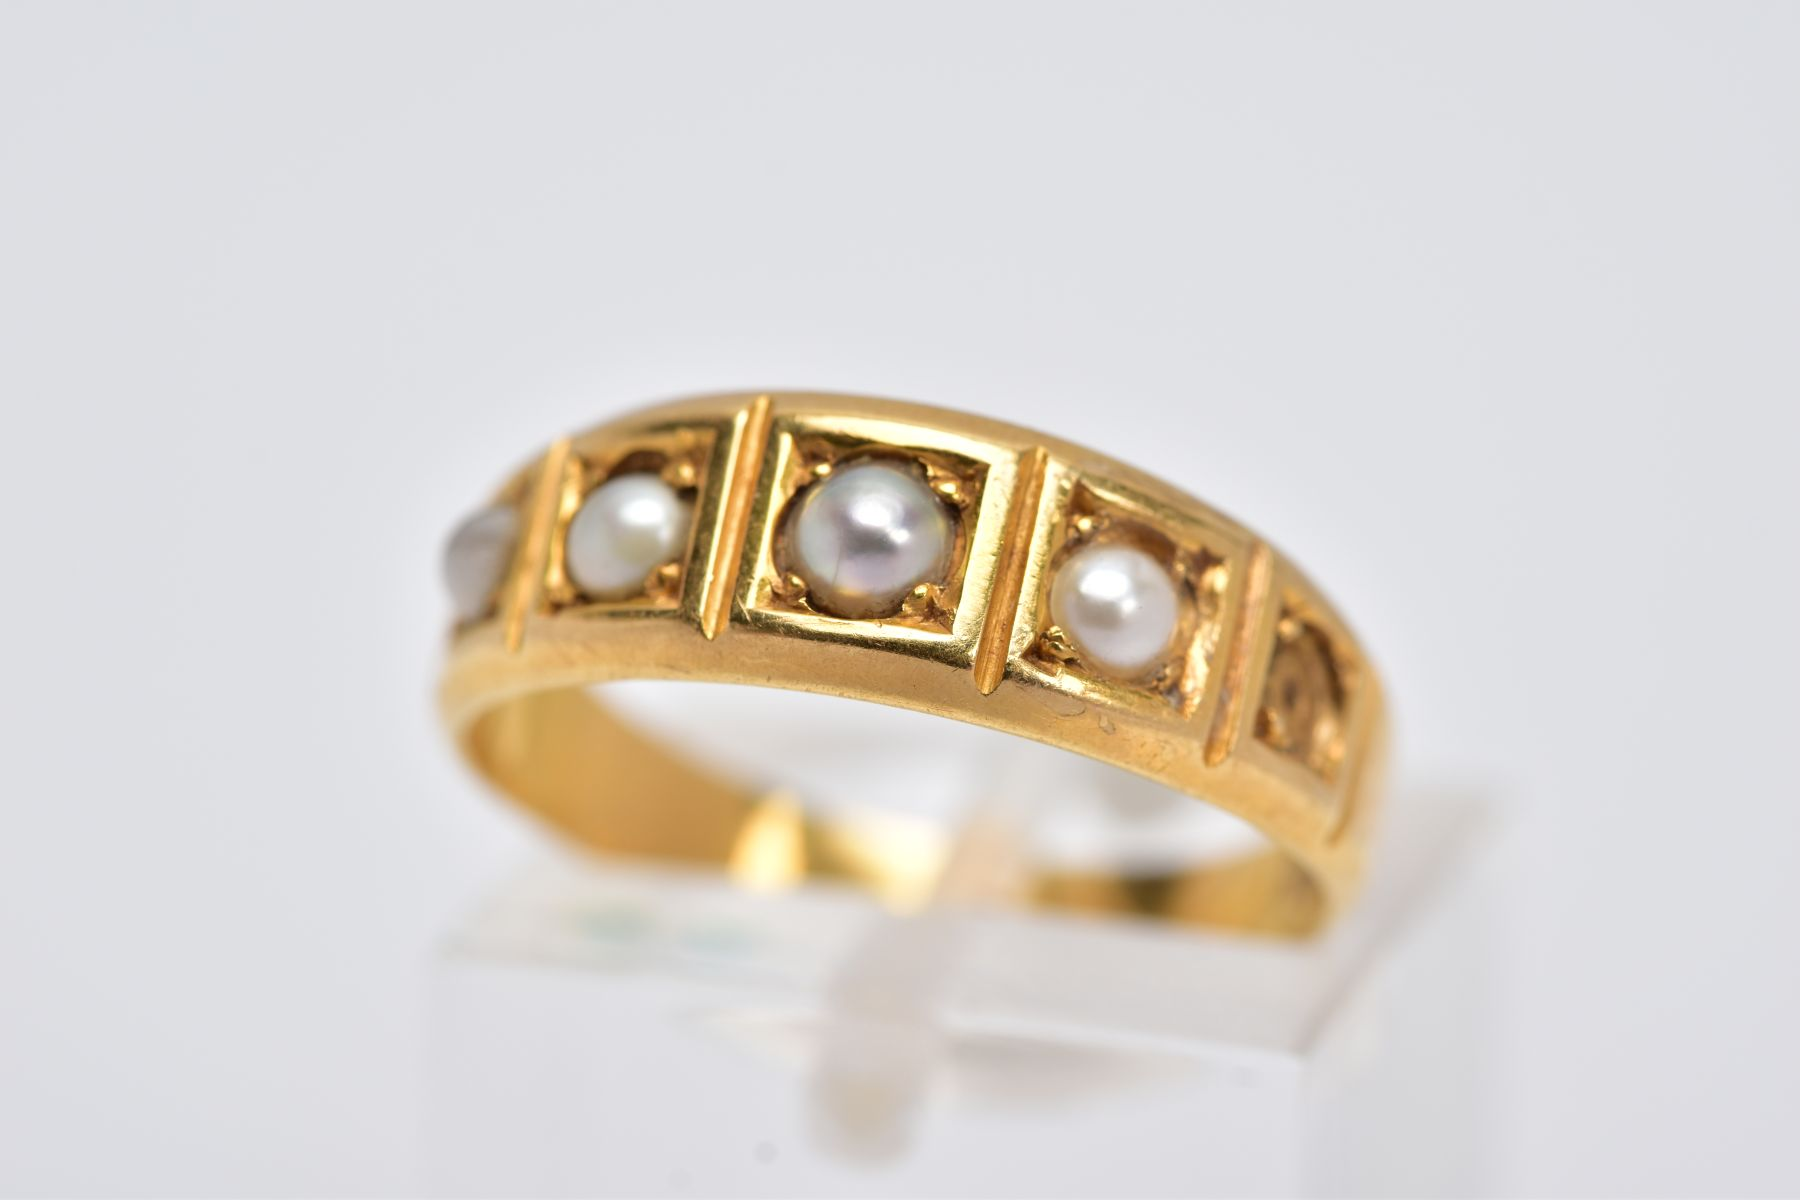 A YELLOW METAL CULTURED PEARL RING, designed with a five square section, three set with cultured